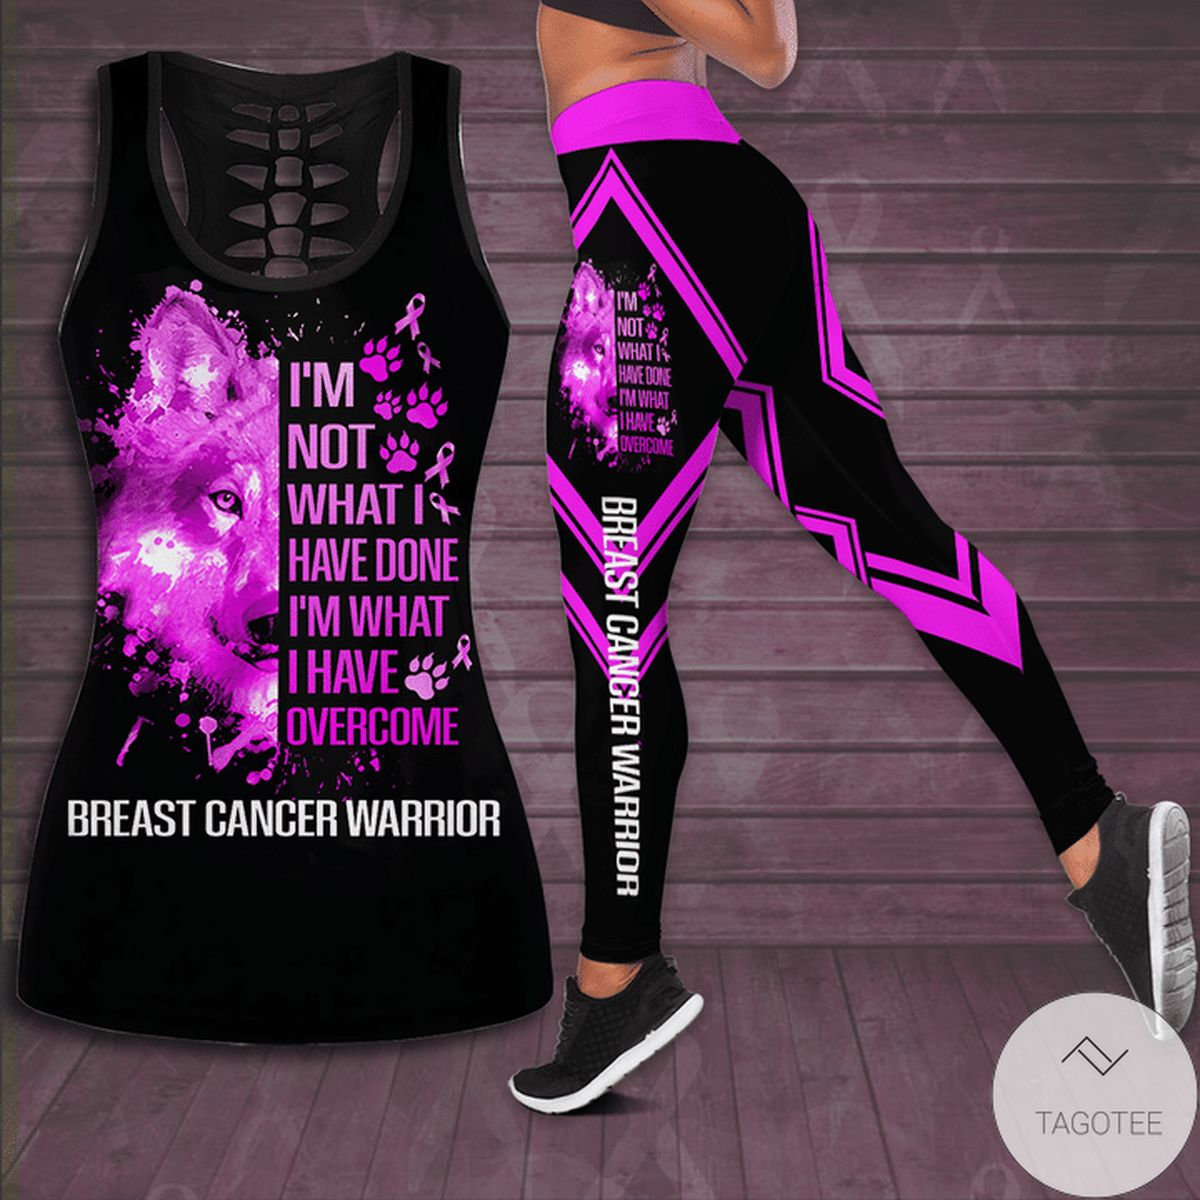 Breast Cancer Awareness I'm Not What I Have Done I'm What I Have Overcome Hollow Tank Top & Leggings Set